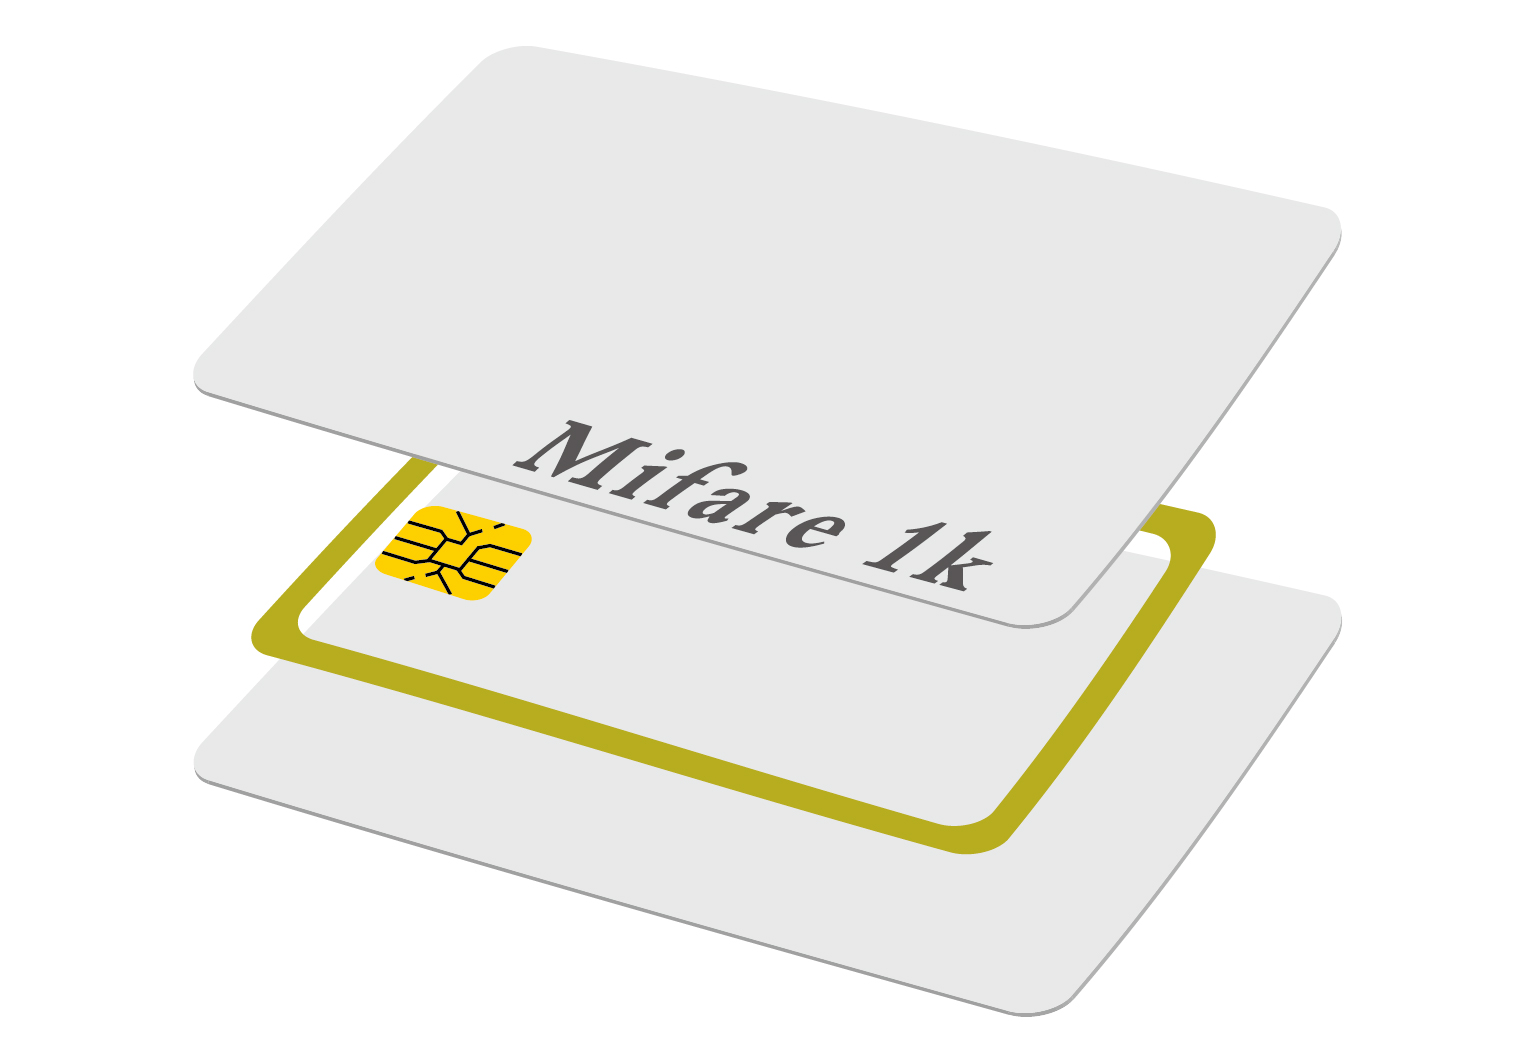 the Mifare